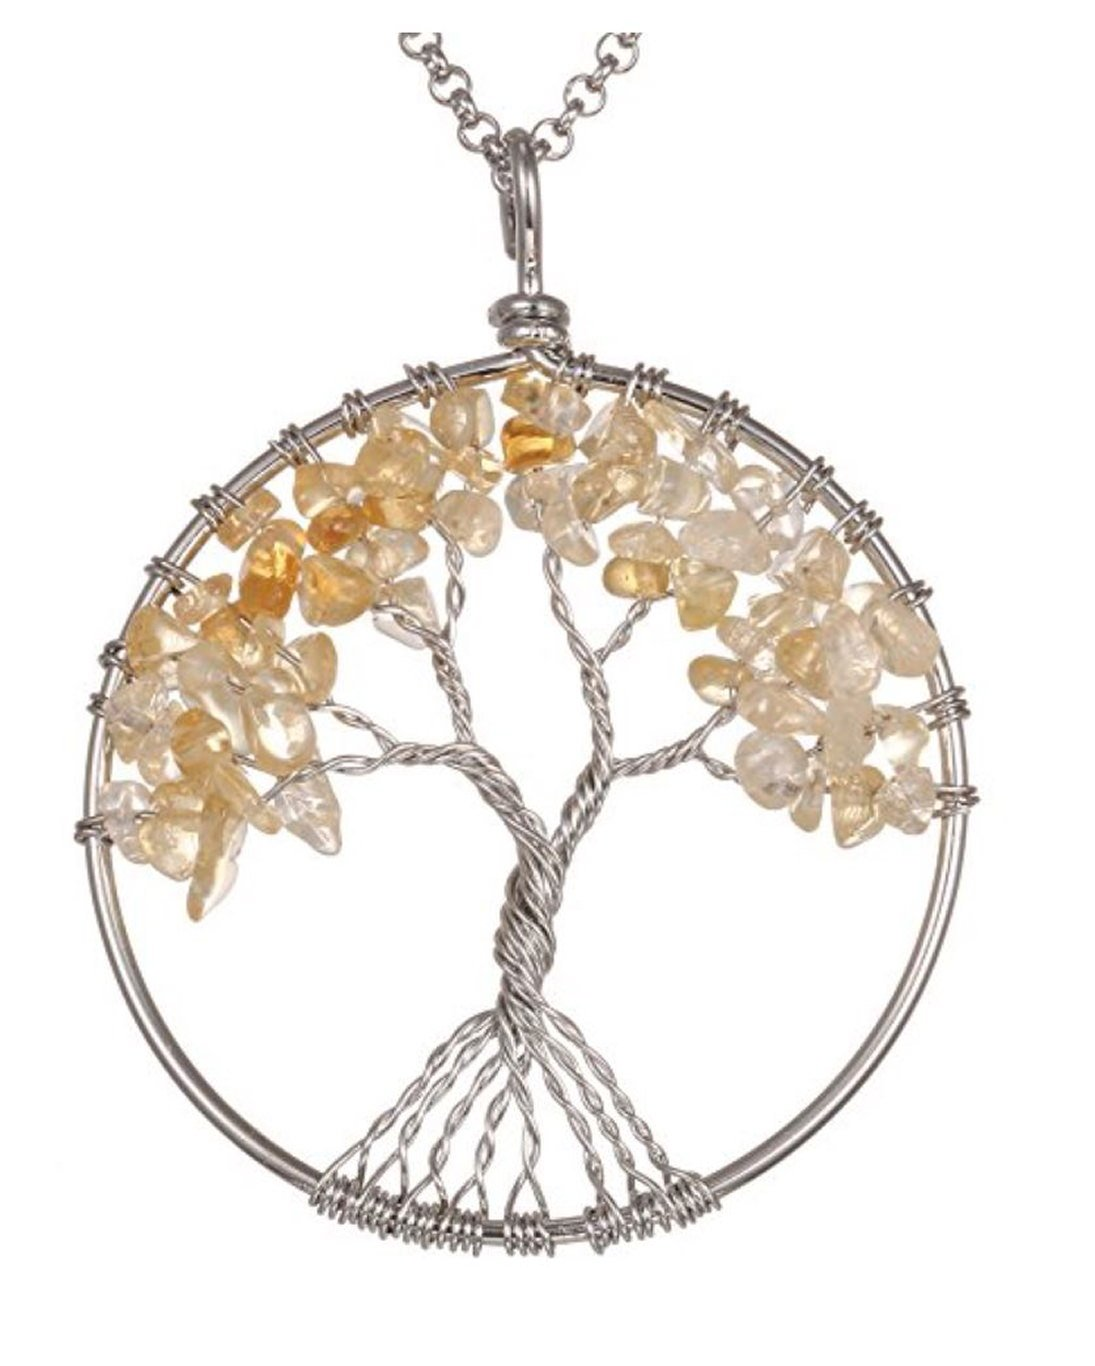 Top Quality Tree of Life Chakra Pendant Necklace Natural Citrine Gemstone Chakra Jewelry 26''-28'' Stainless Steel Chain Great Gift GGP9-15